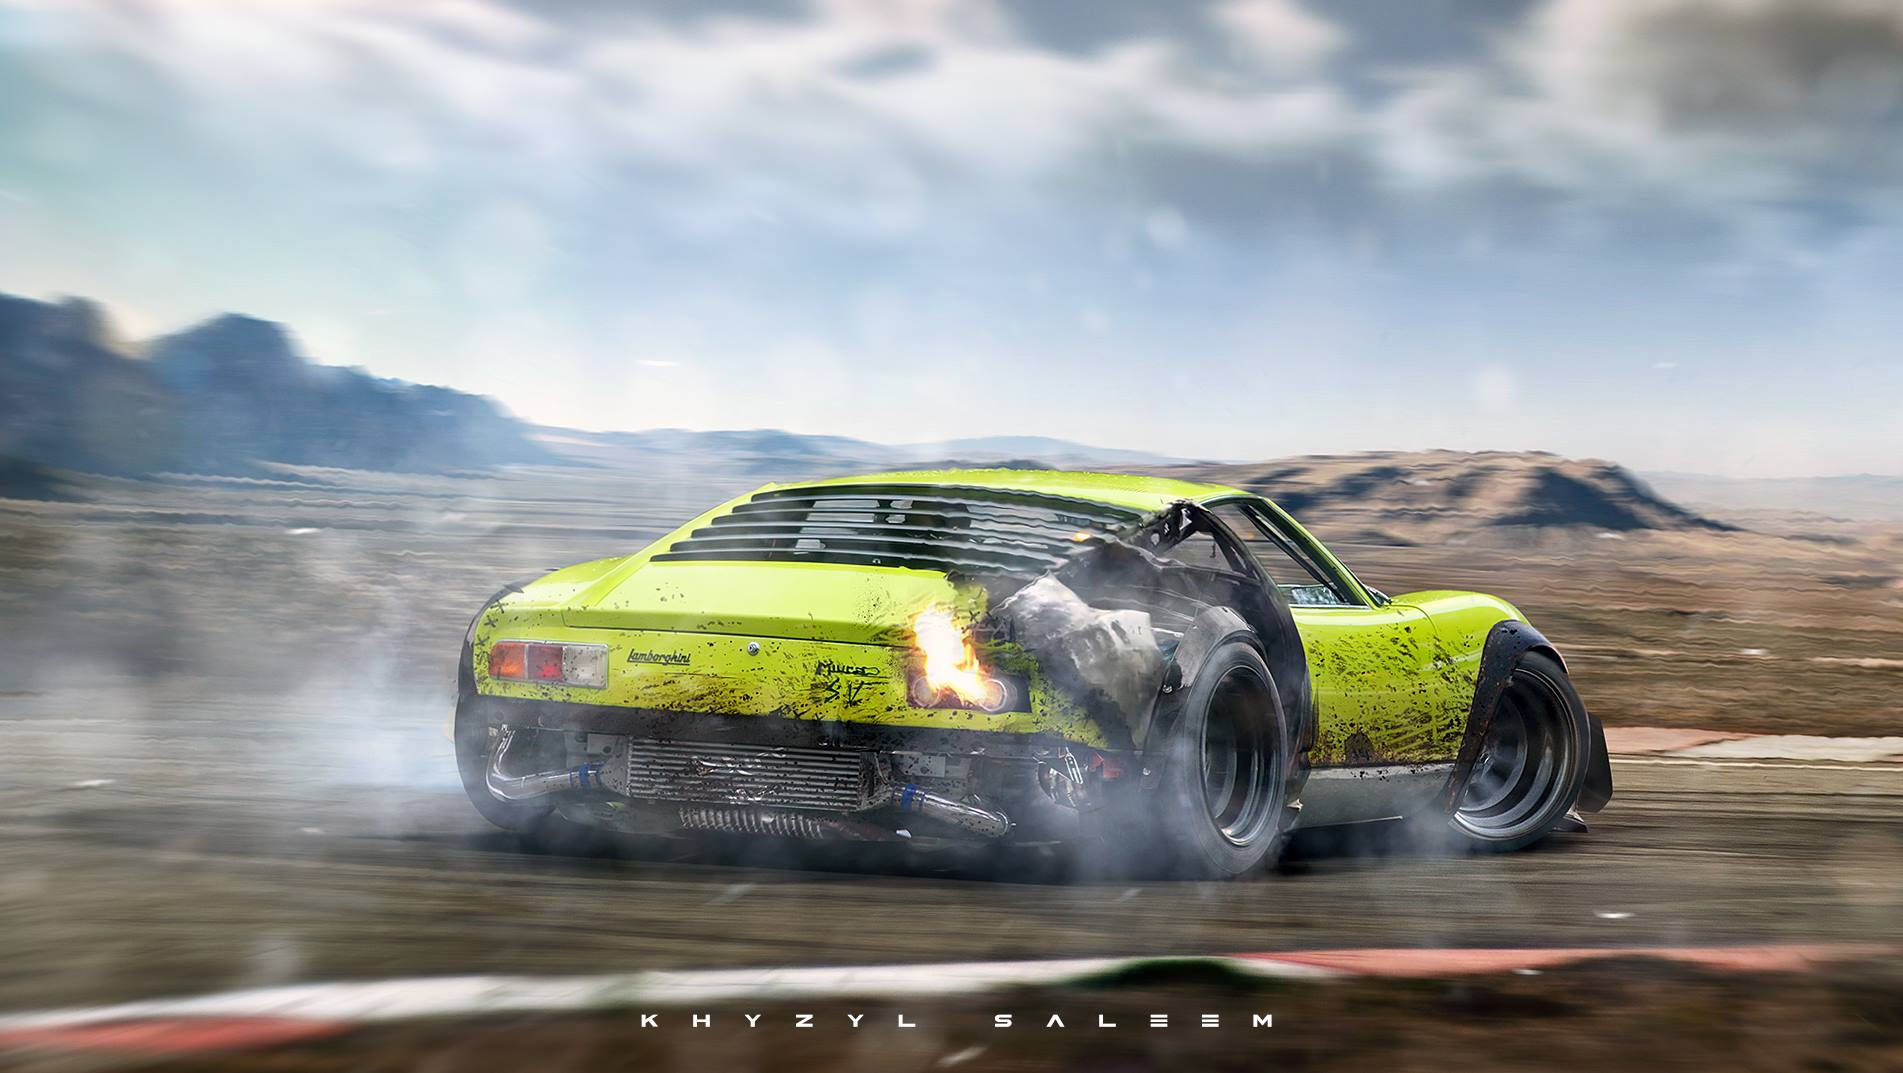 Lamborghini Miura Drifting While On Fire In Extreme Rendering